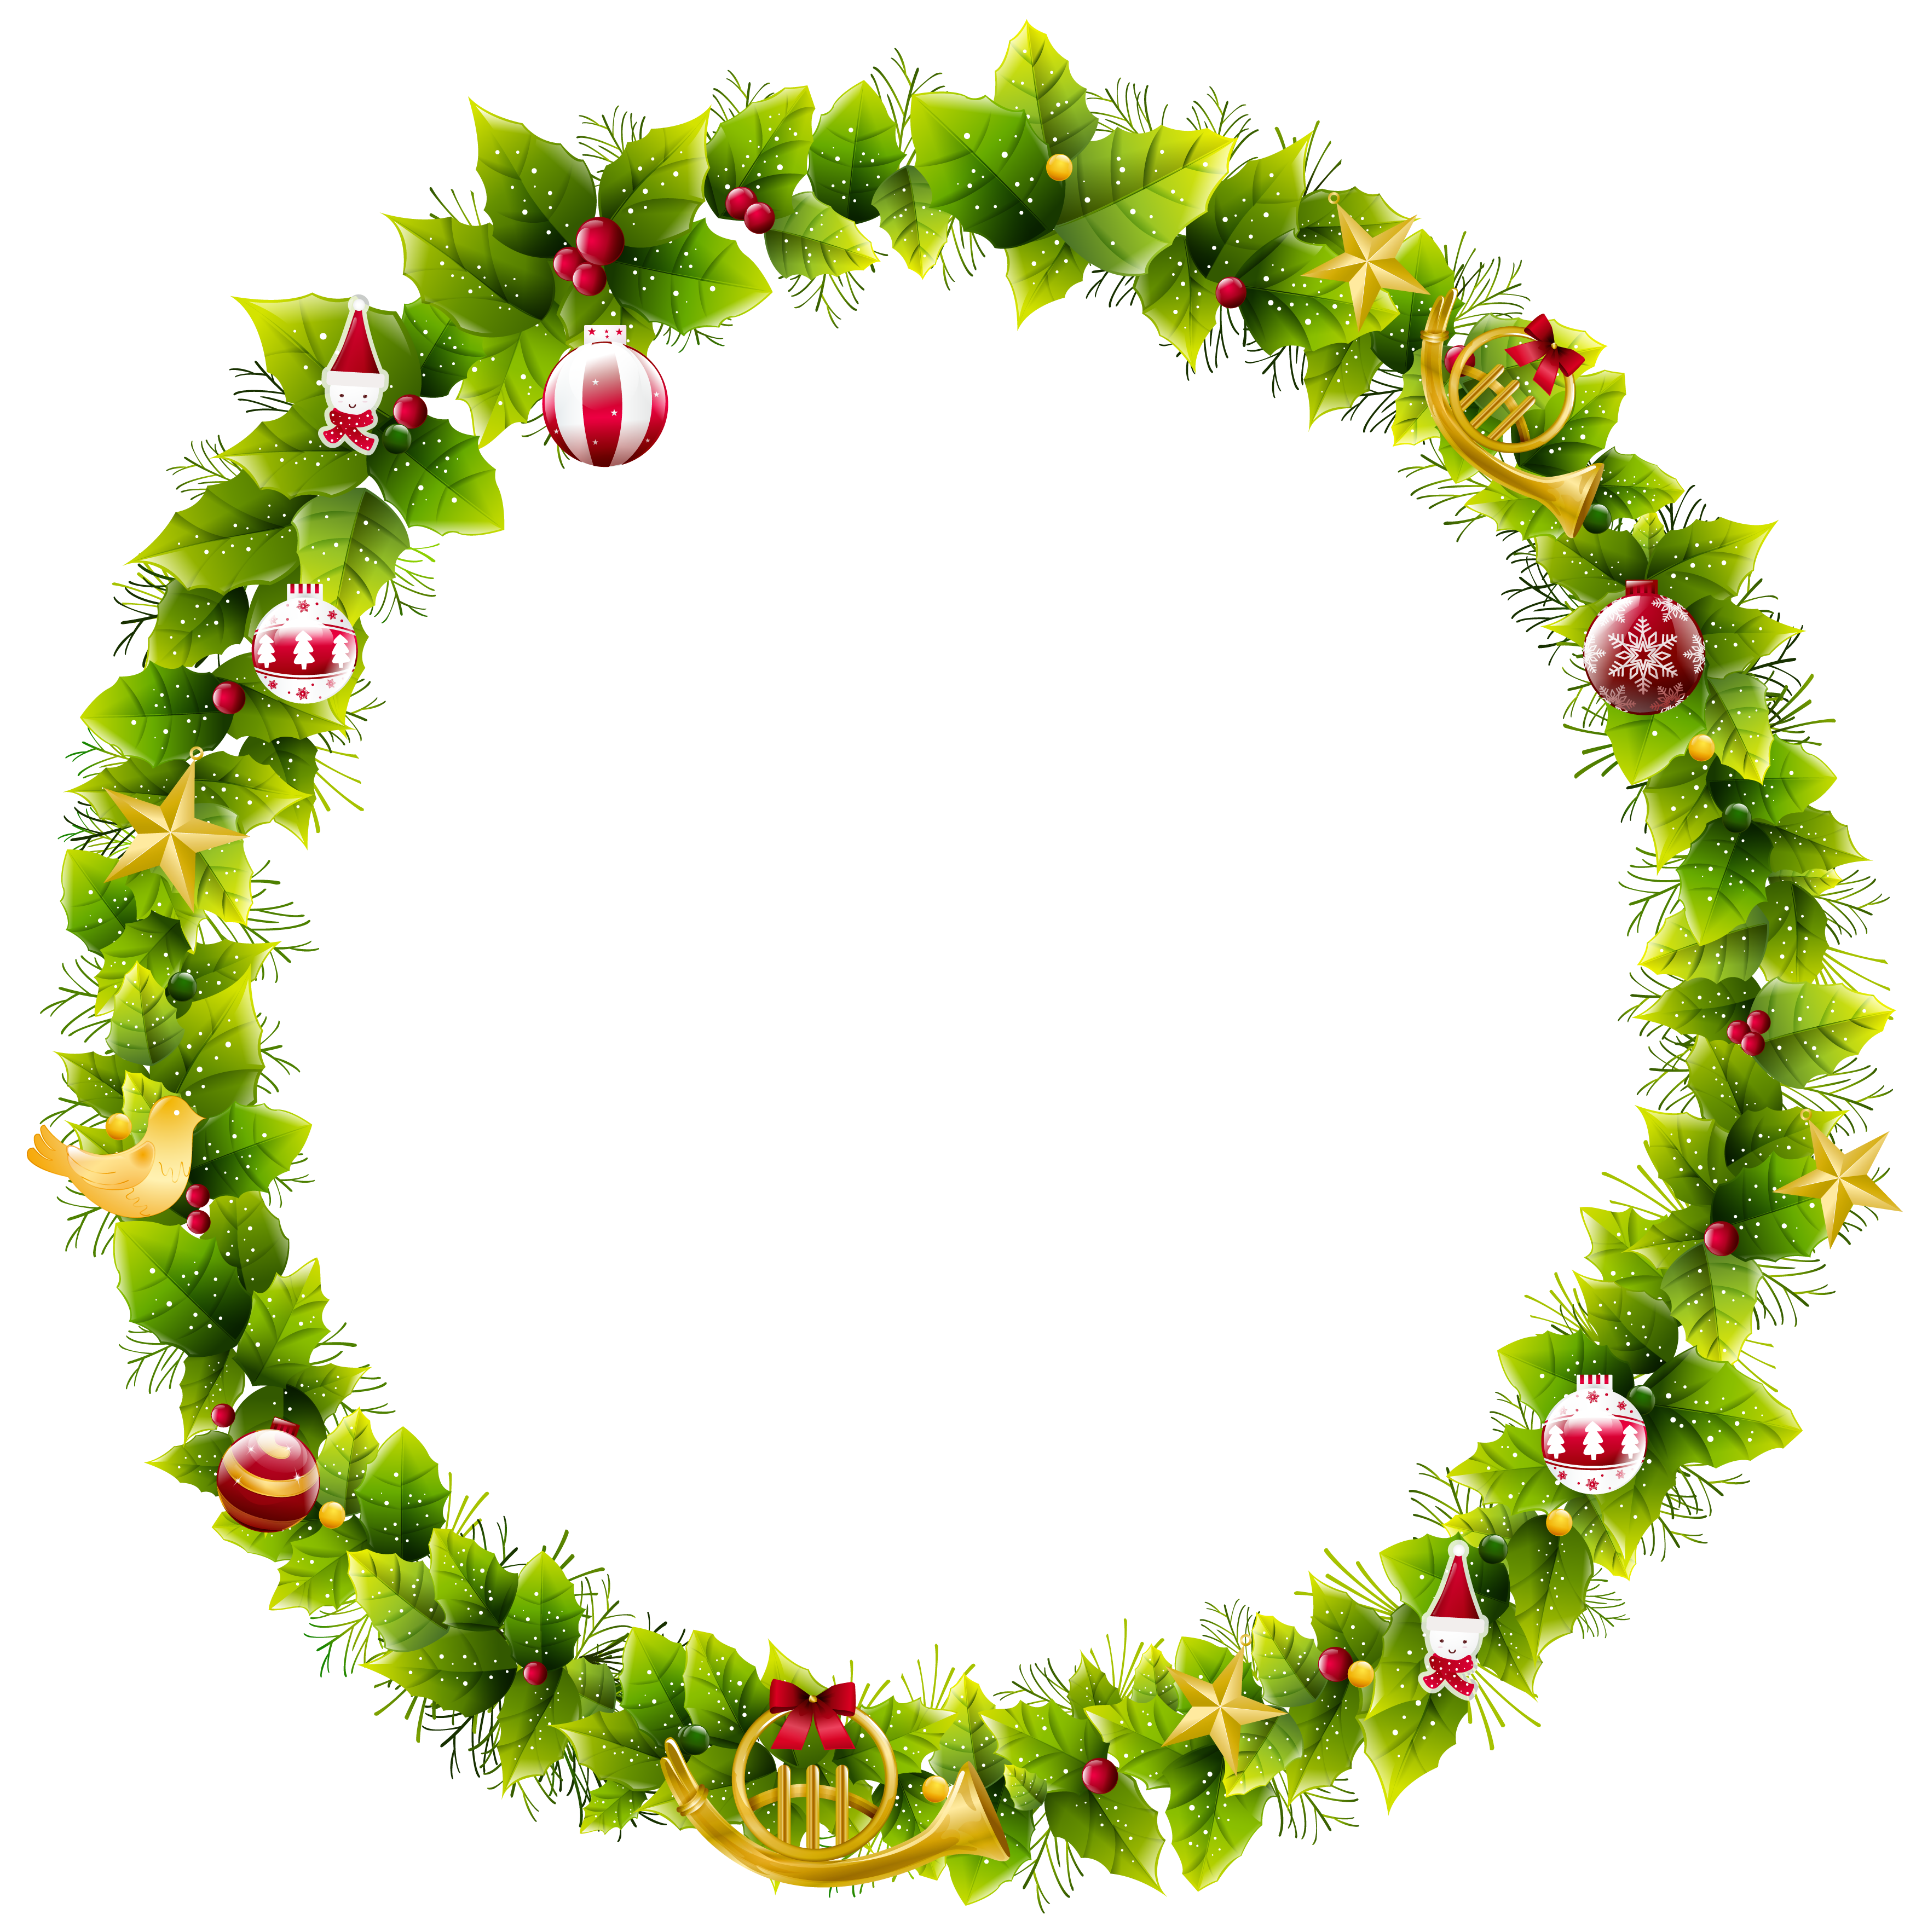 Wreath Border Png Free Free Wreath Border Png Transparent Images